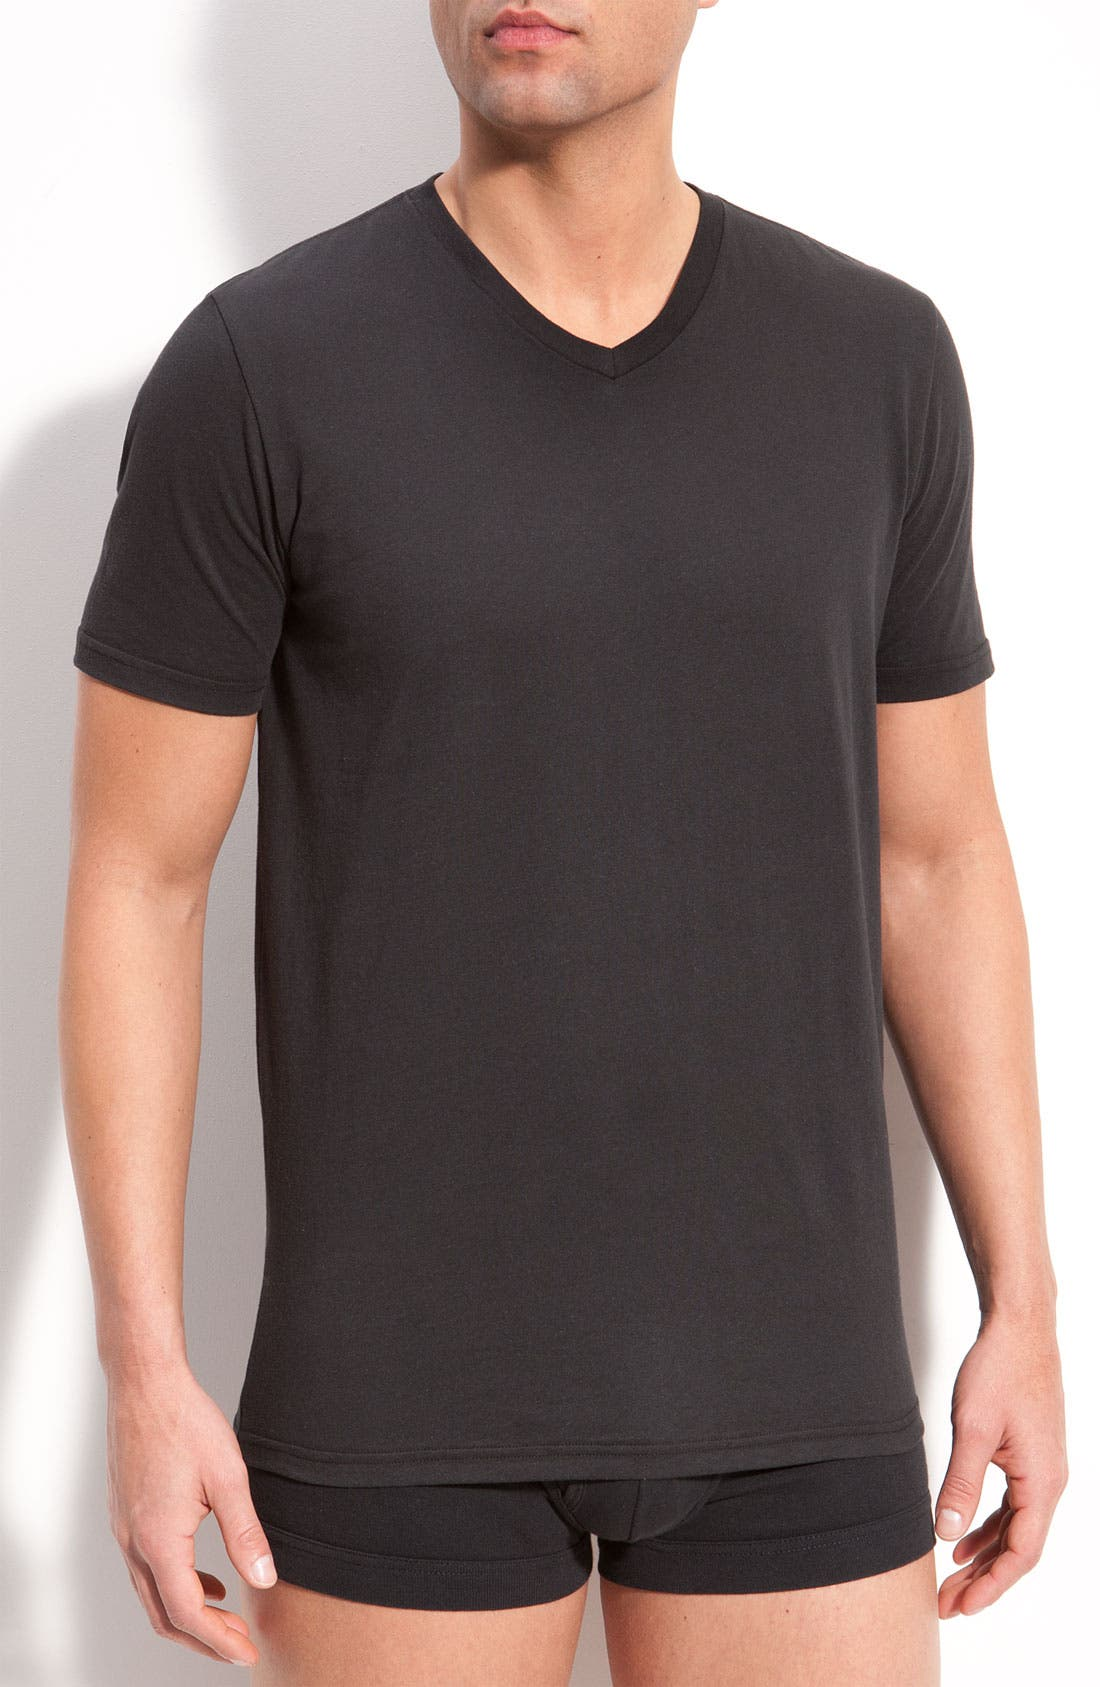 Main Image - Michael Kors V-Neck Shirt (3-Pack)